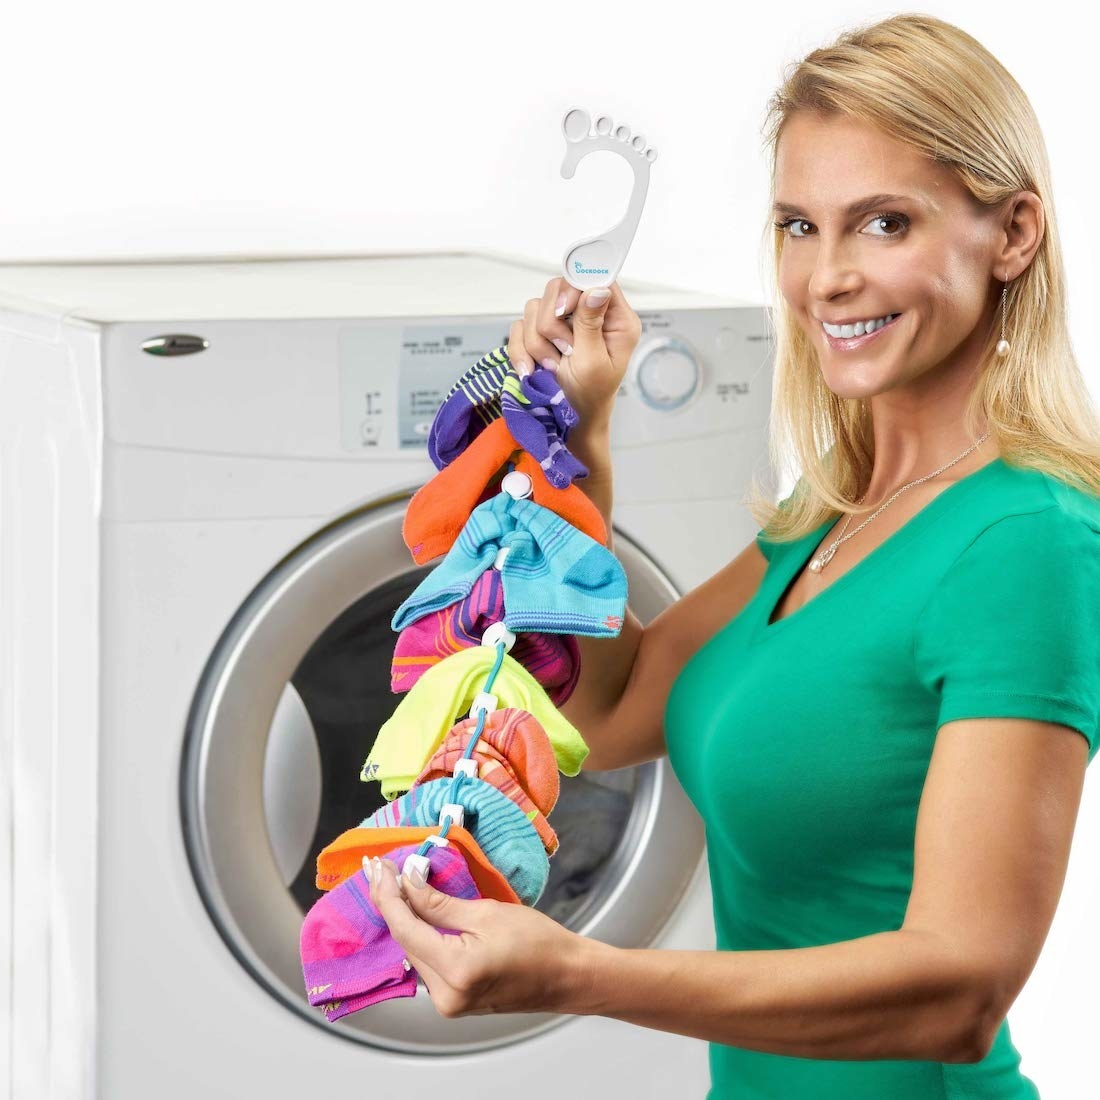 A model holding the sock doc stocked with nine pairs of socks; it's an elastic cord with white dividers creating gaps where you can slip in socks